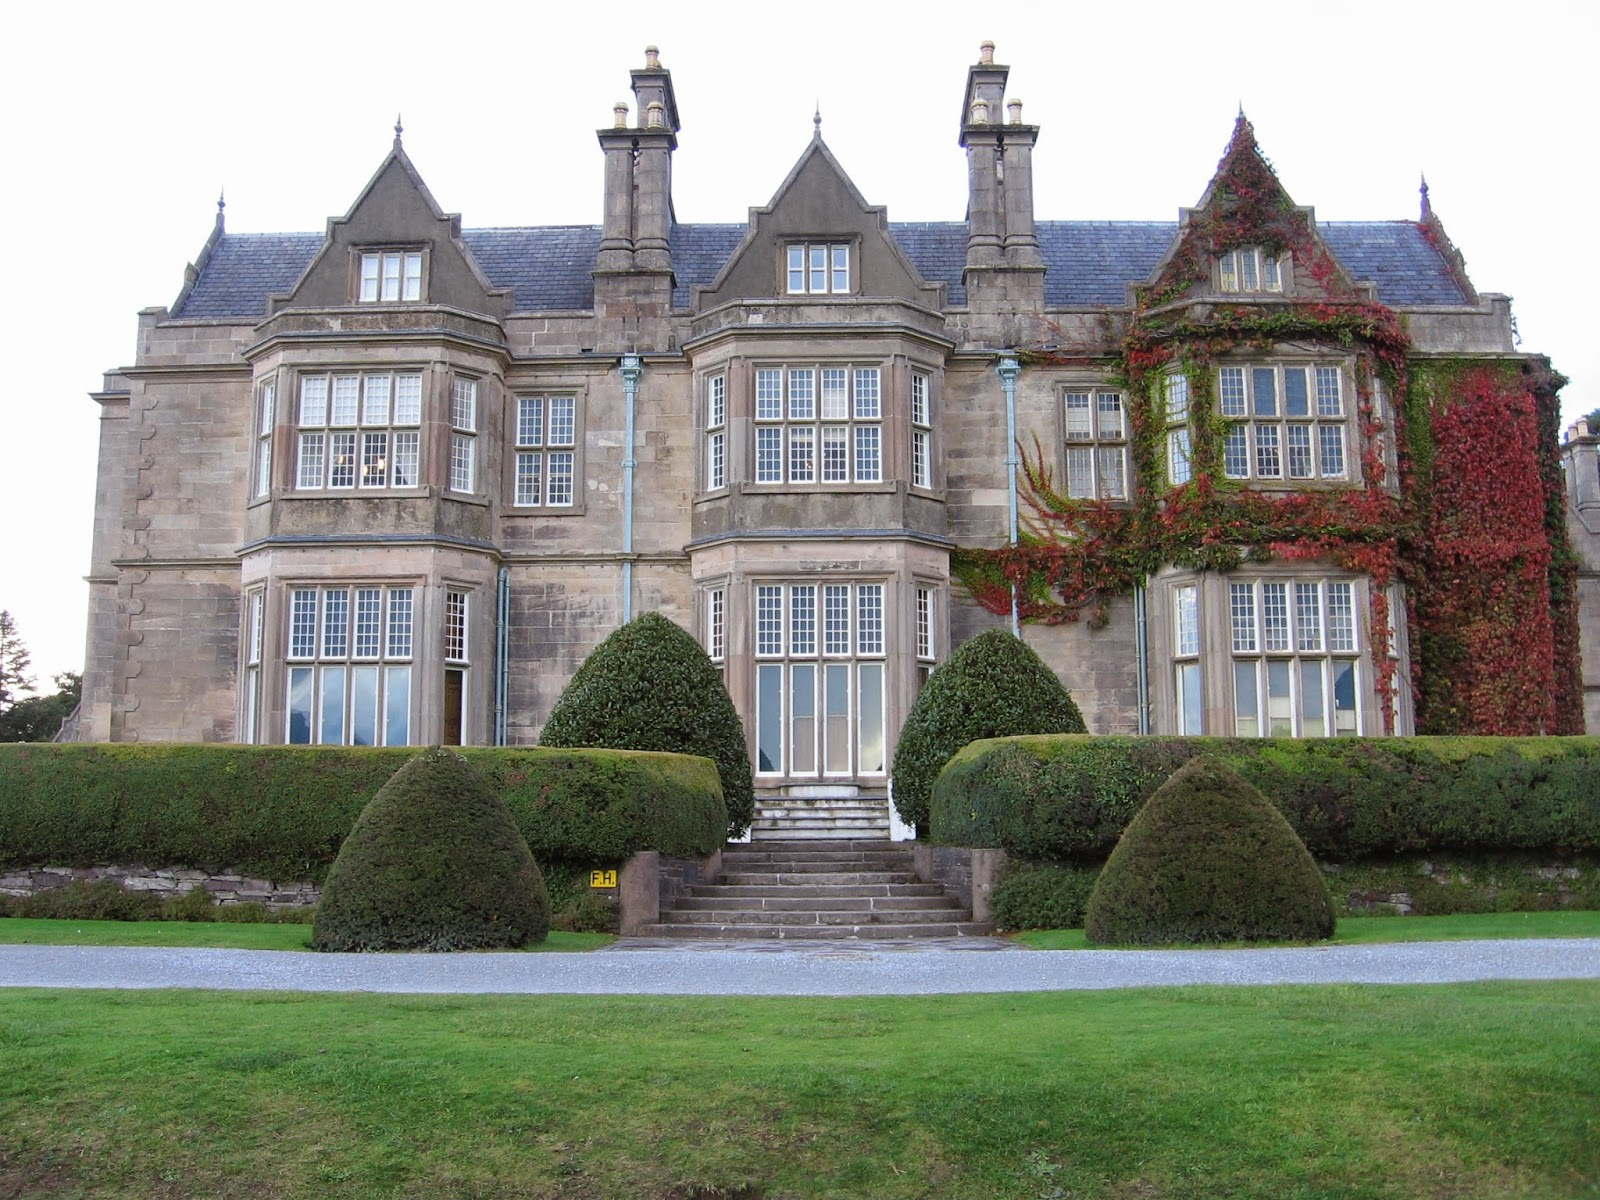 Muckross House in Killarney National Park in Ireland